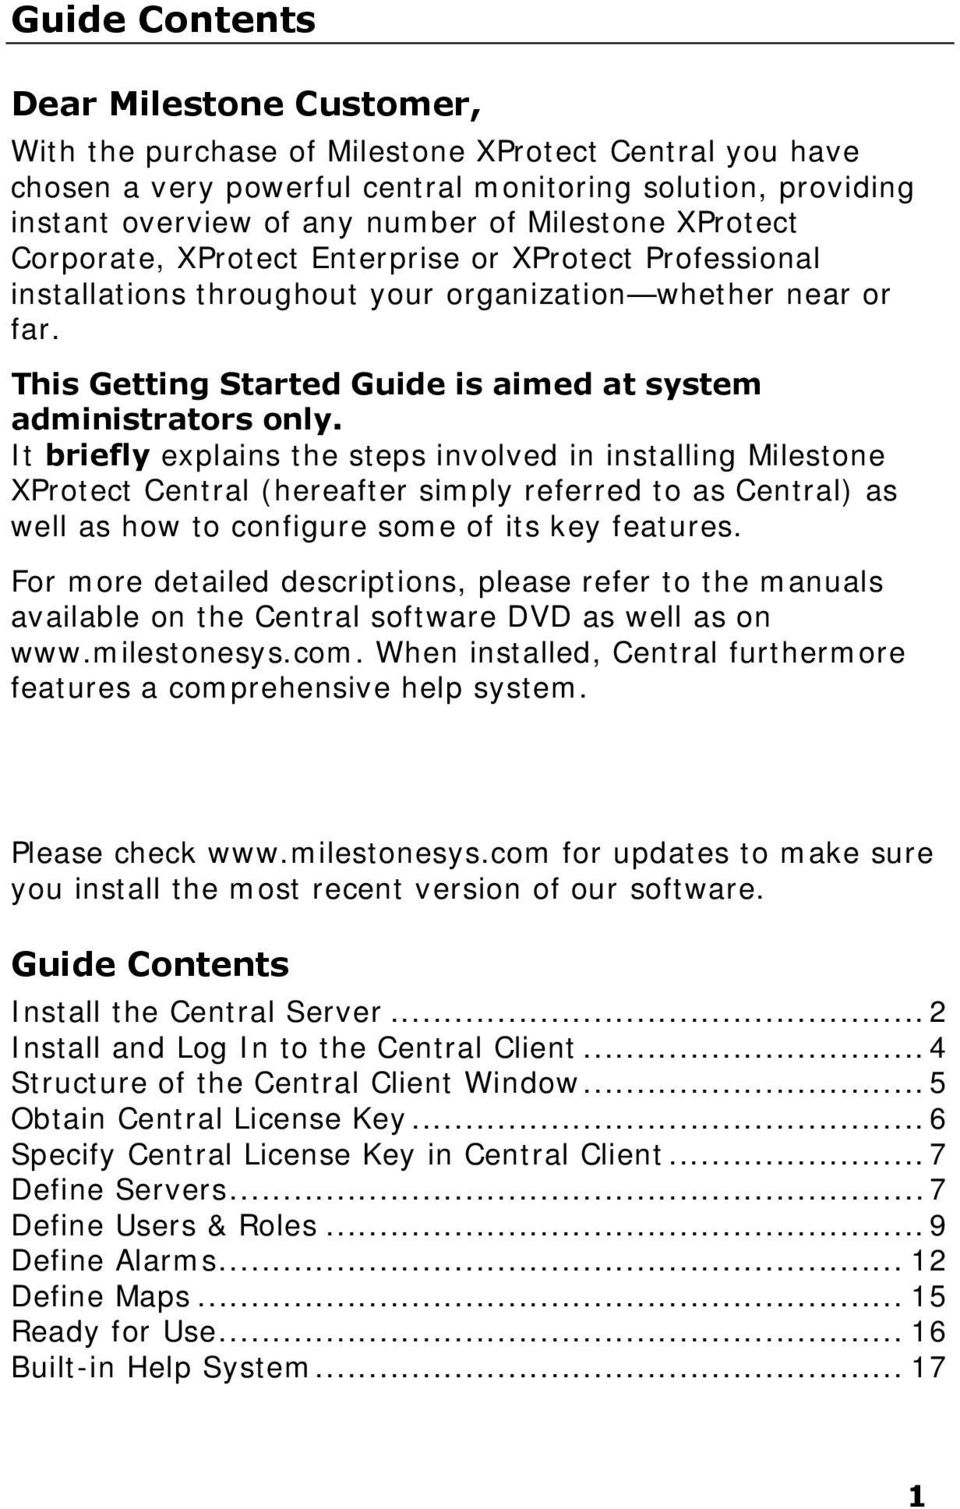 This Getting Started Guide is aimed at system administrators only.